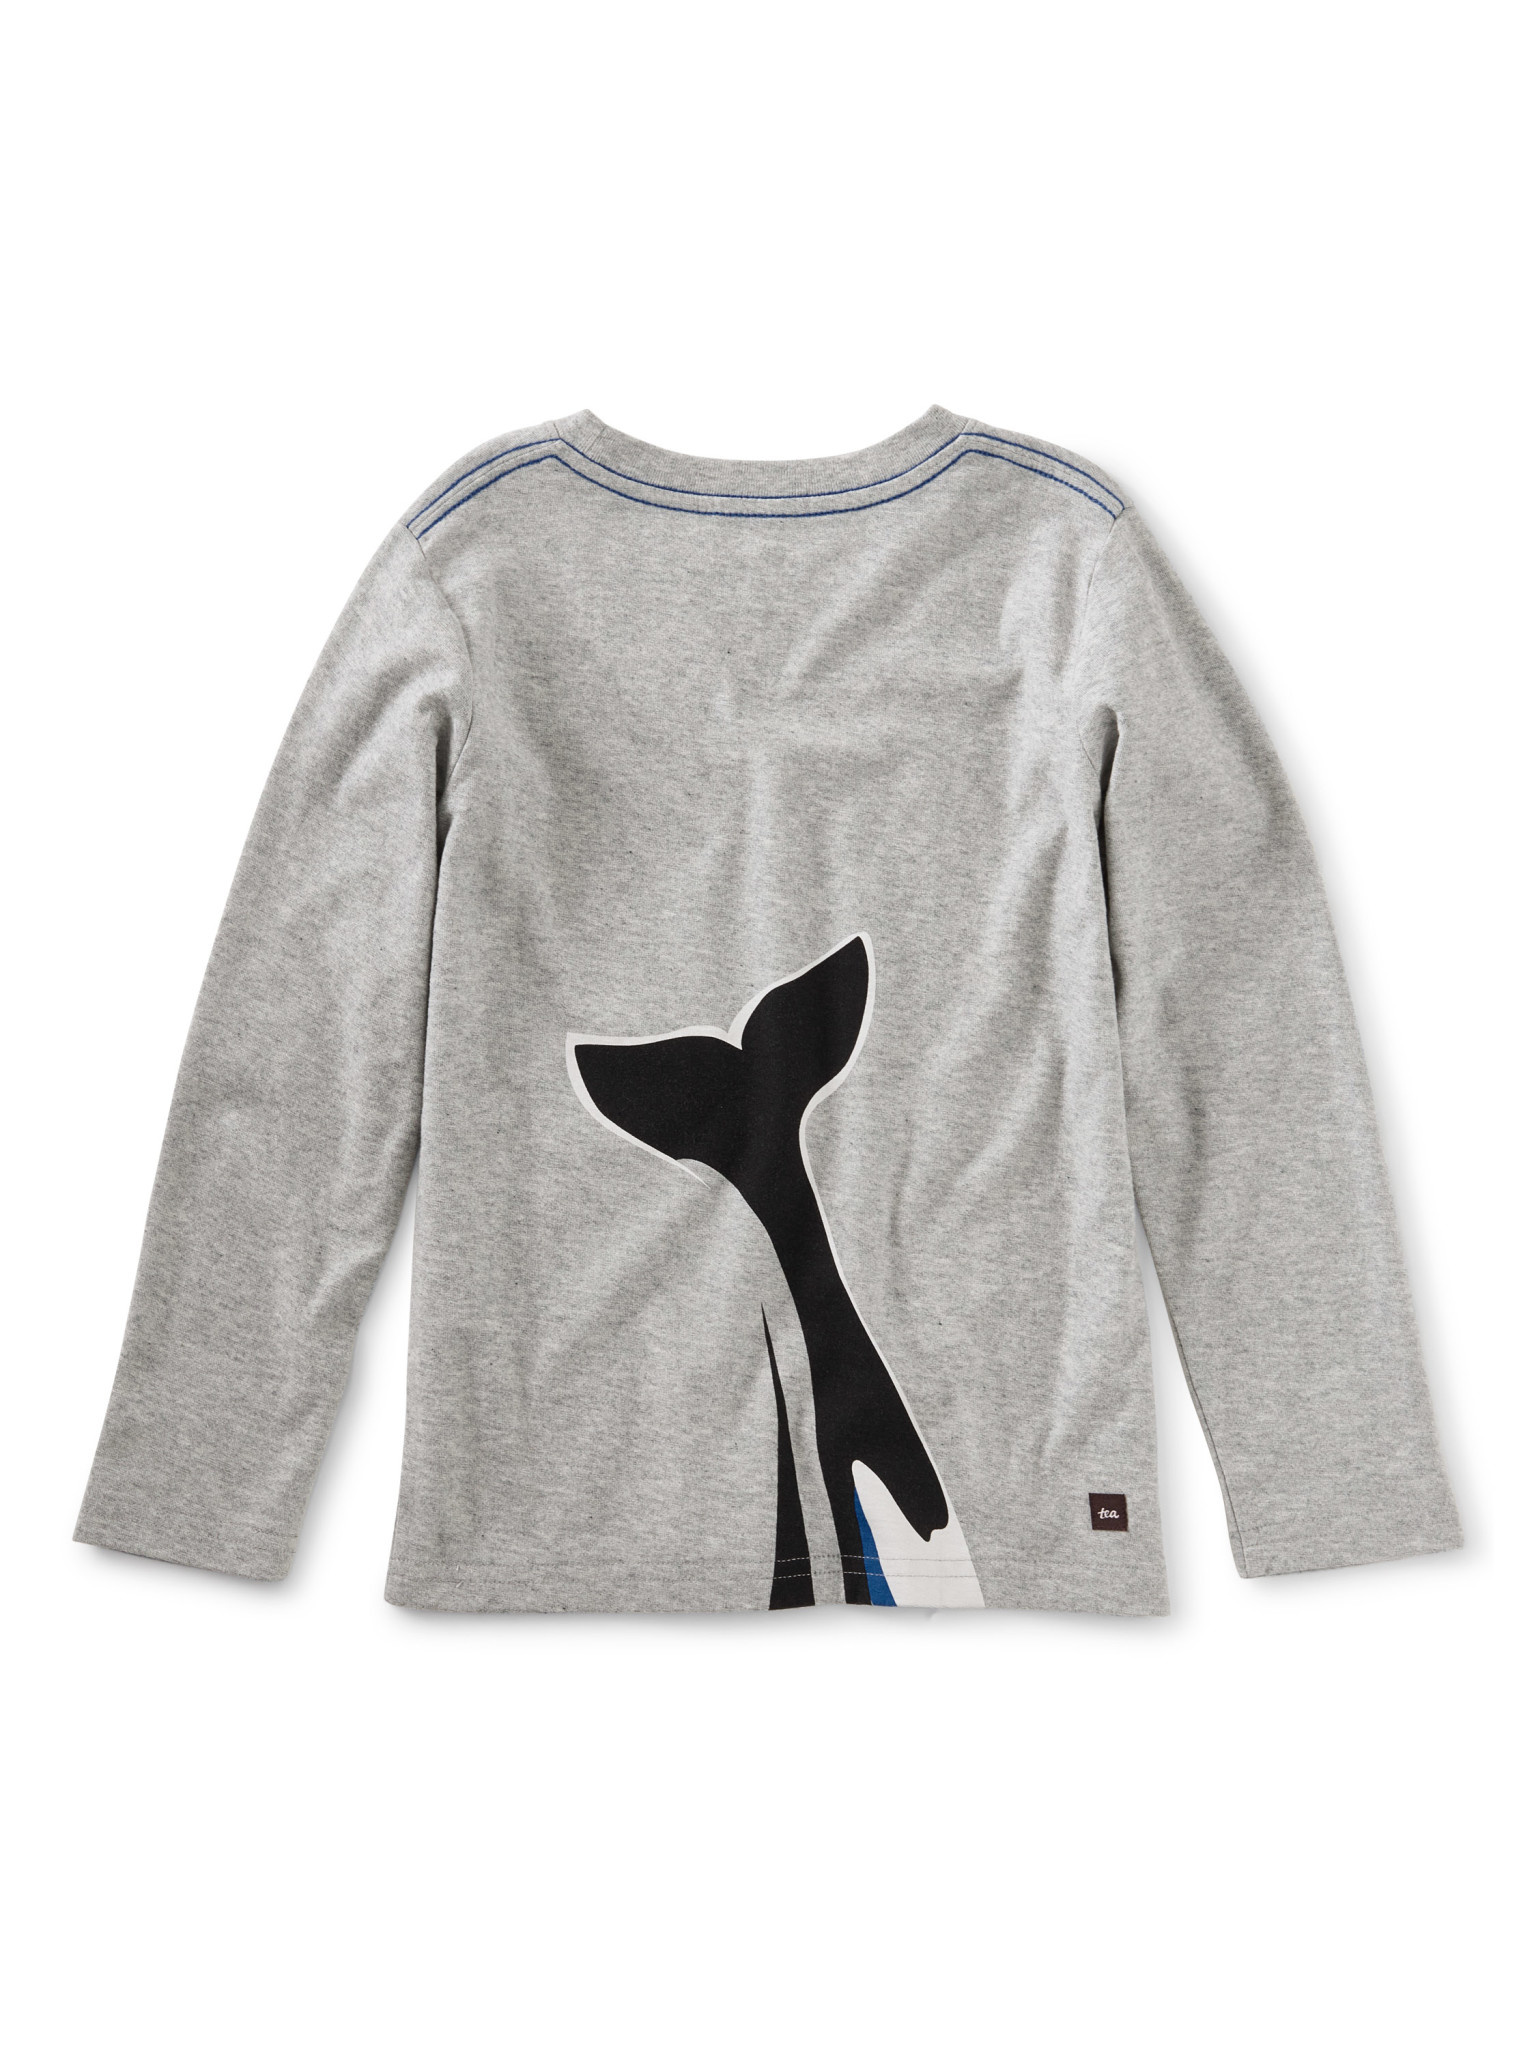 Tea Collection Orca Waves Graphic Tee